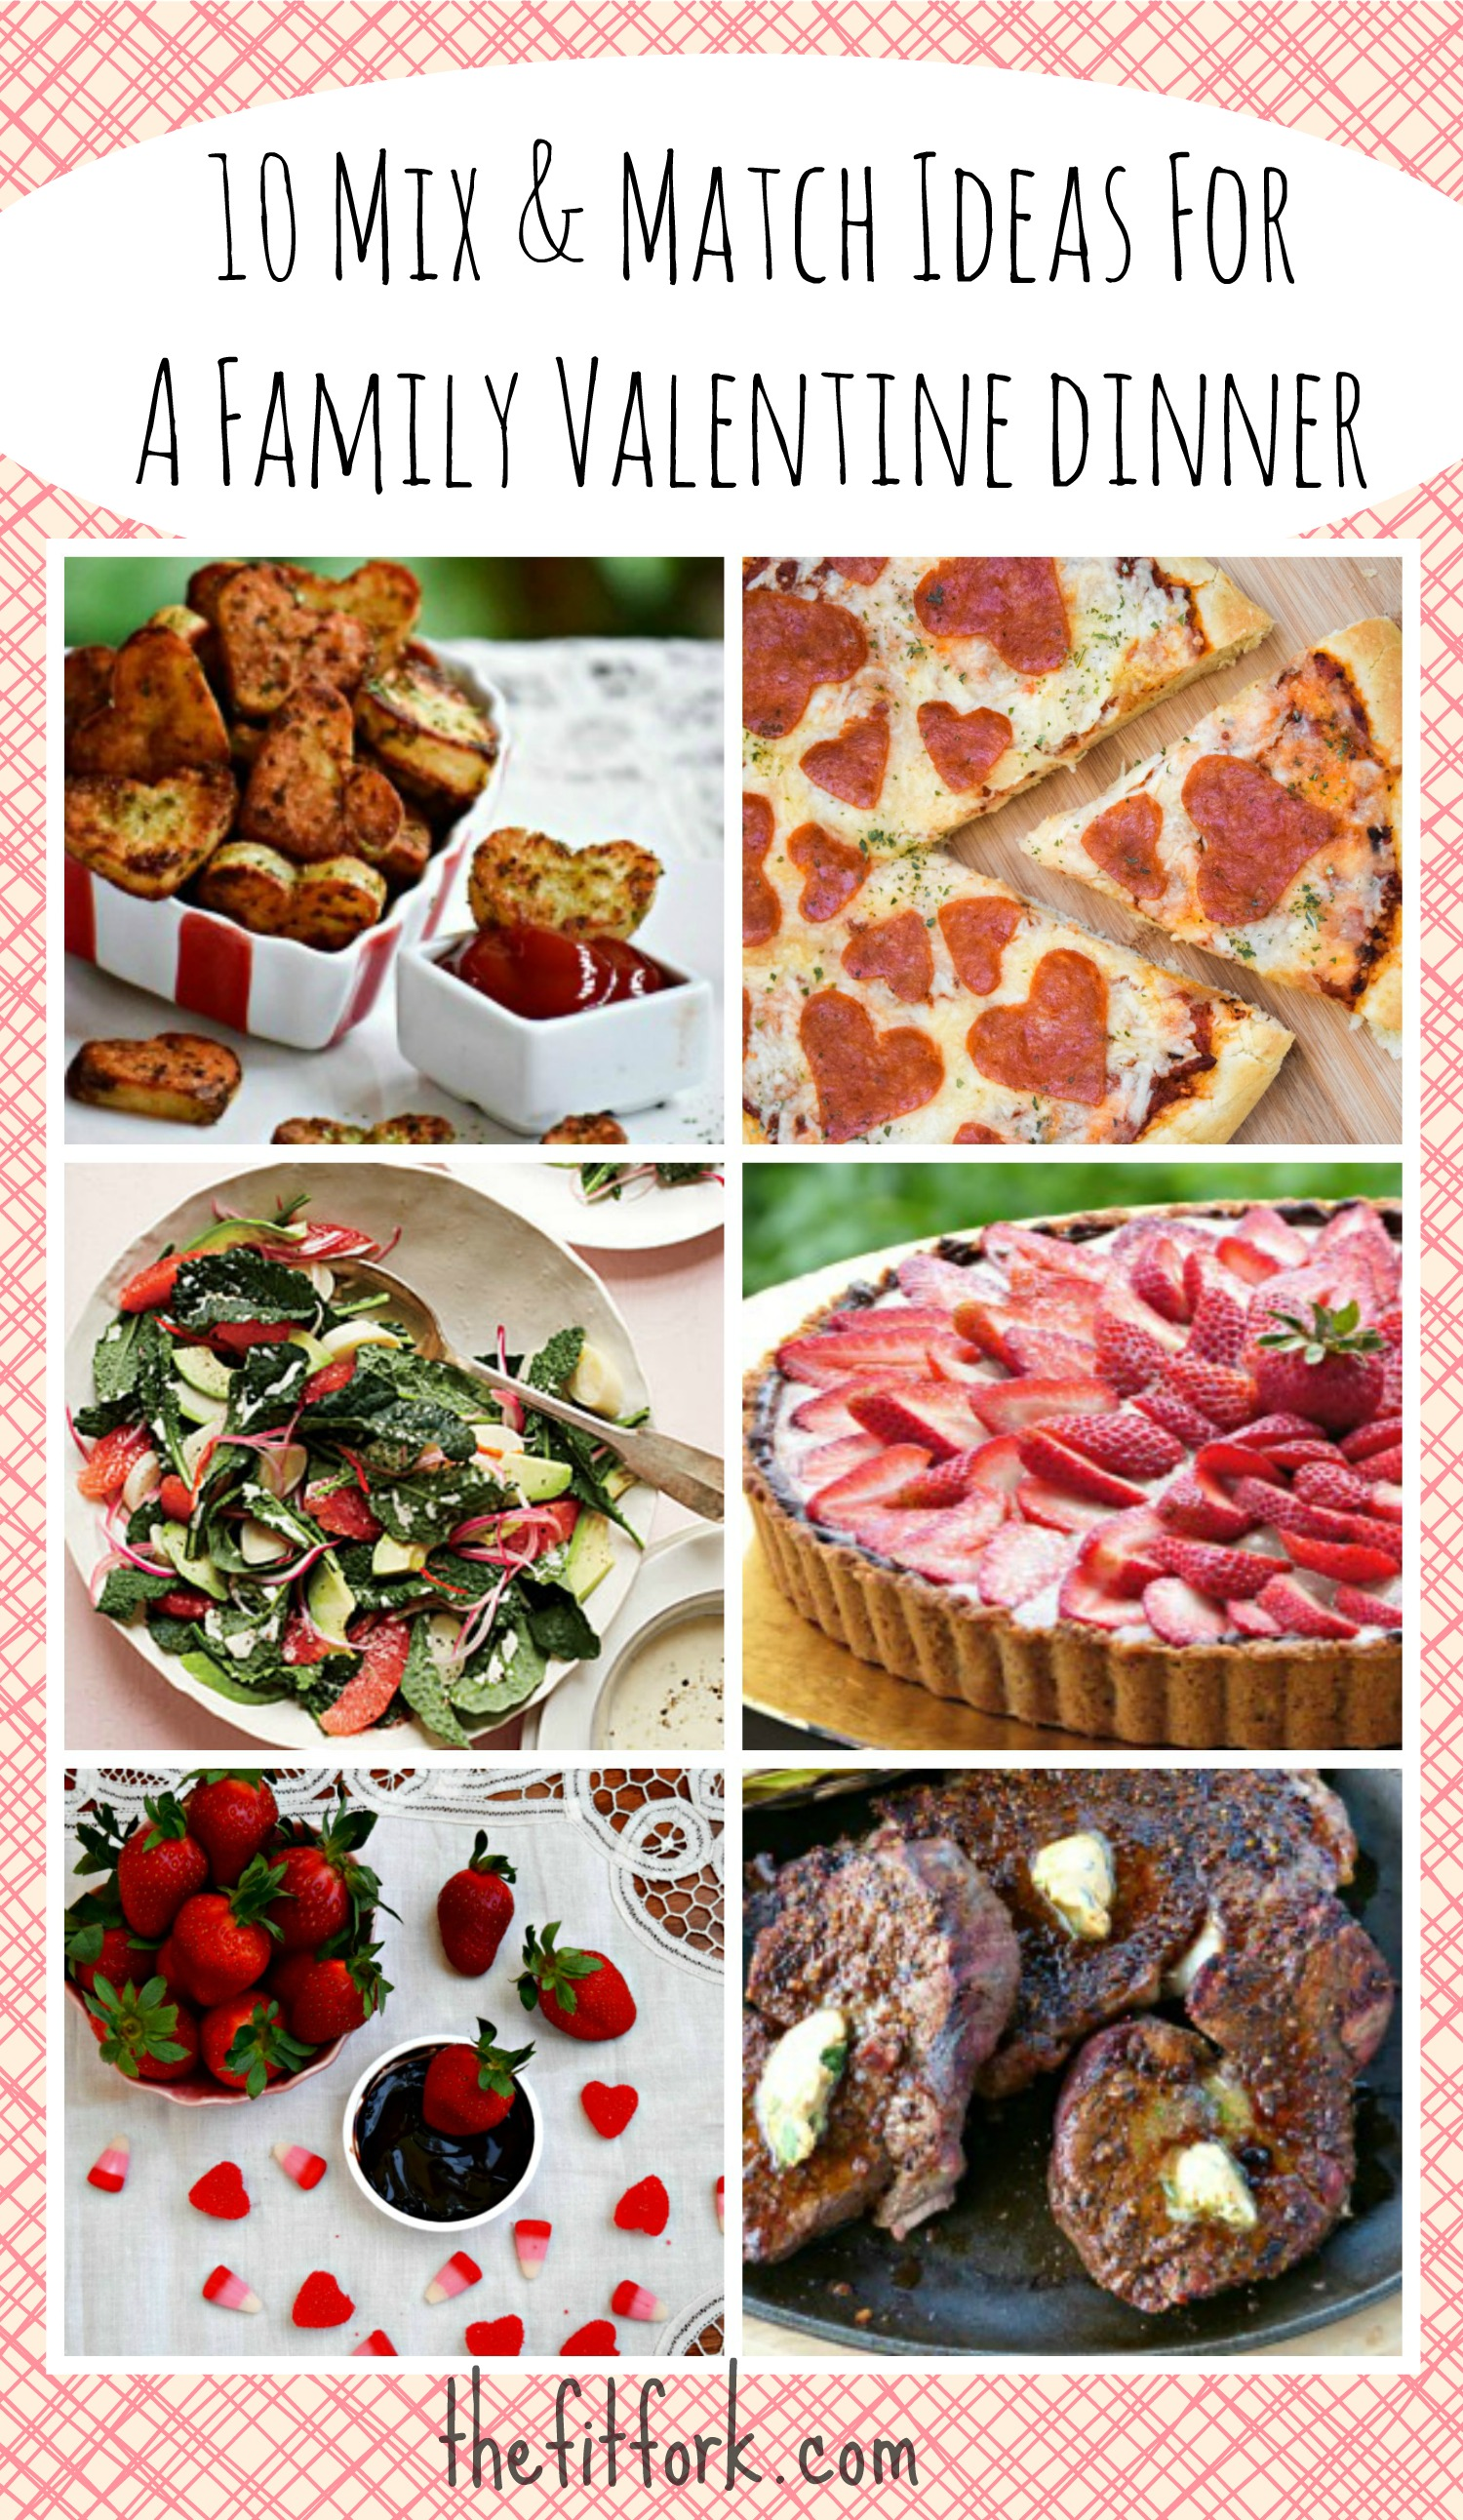 10 ideas for mix and match family valentine dinner thefitforkcom - Valentines Dinners